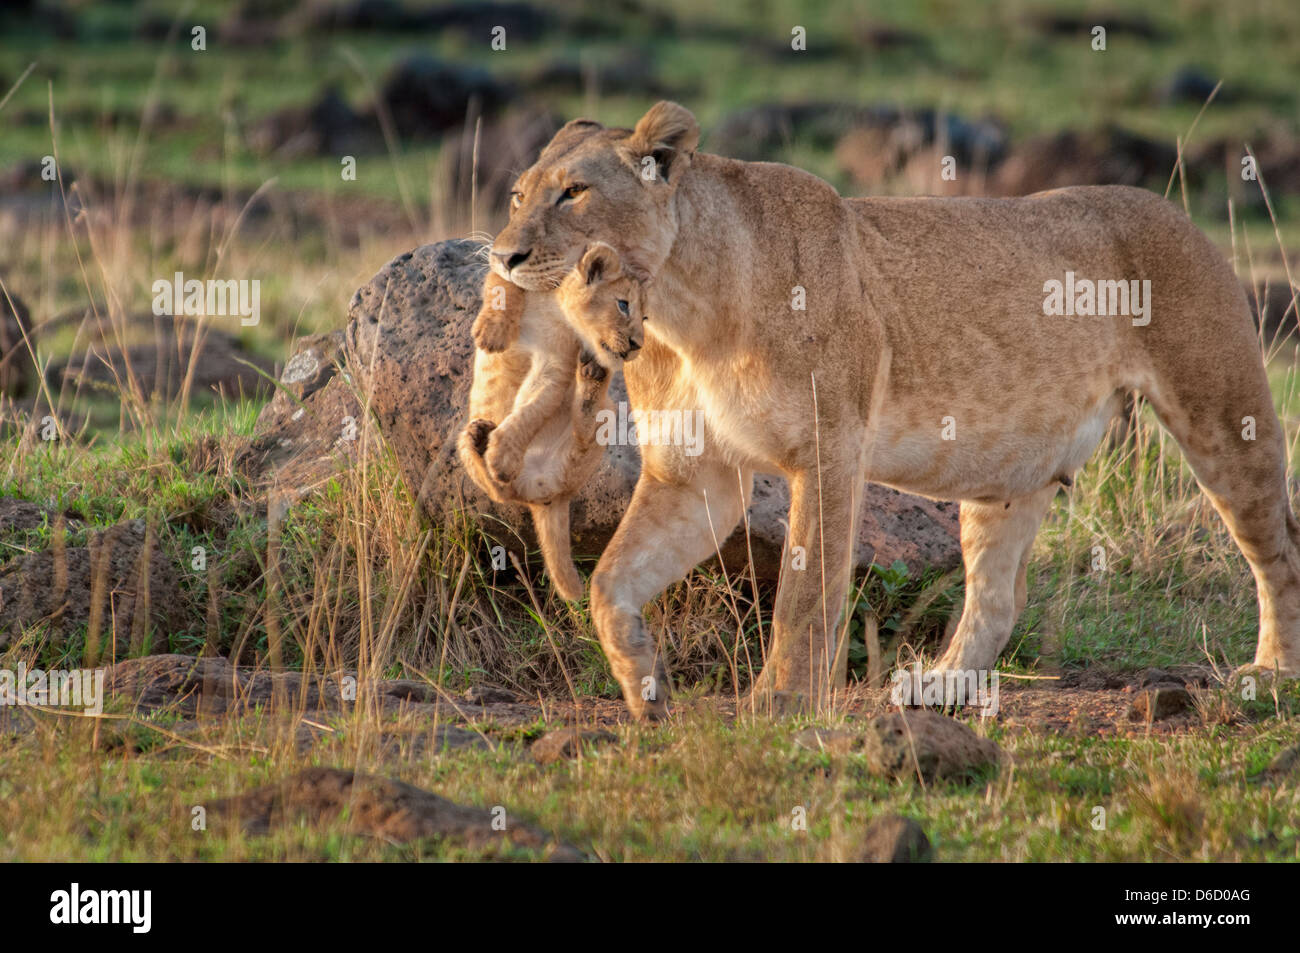 Lionne, Panthera leo, transportant un cub dans sa bouche, Masai Mara National Reserve, Kenya, Africa Photo Stock